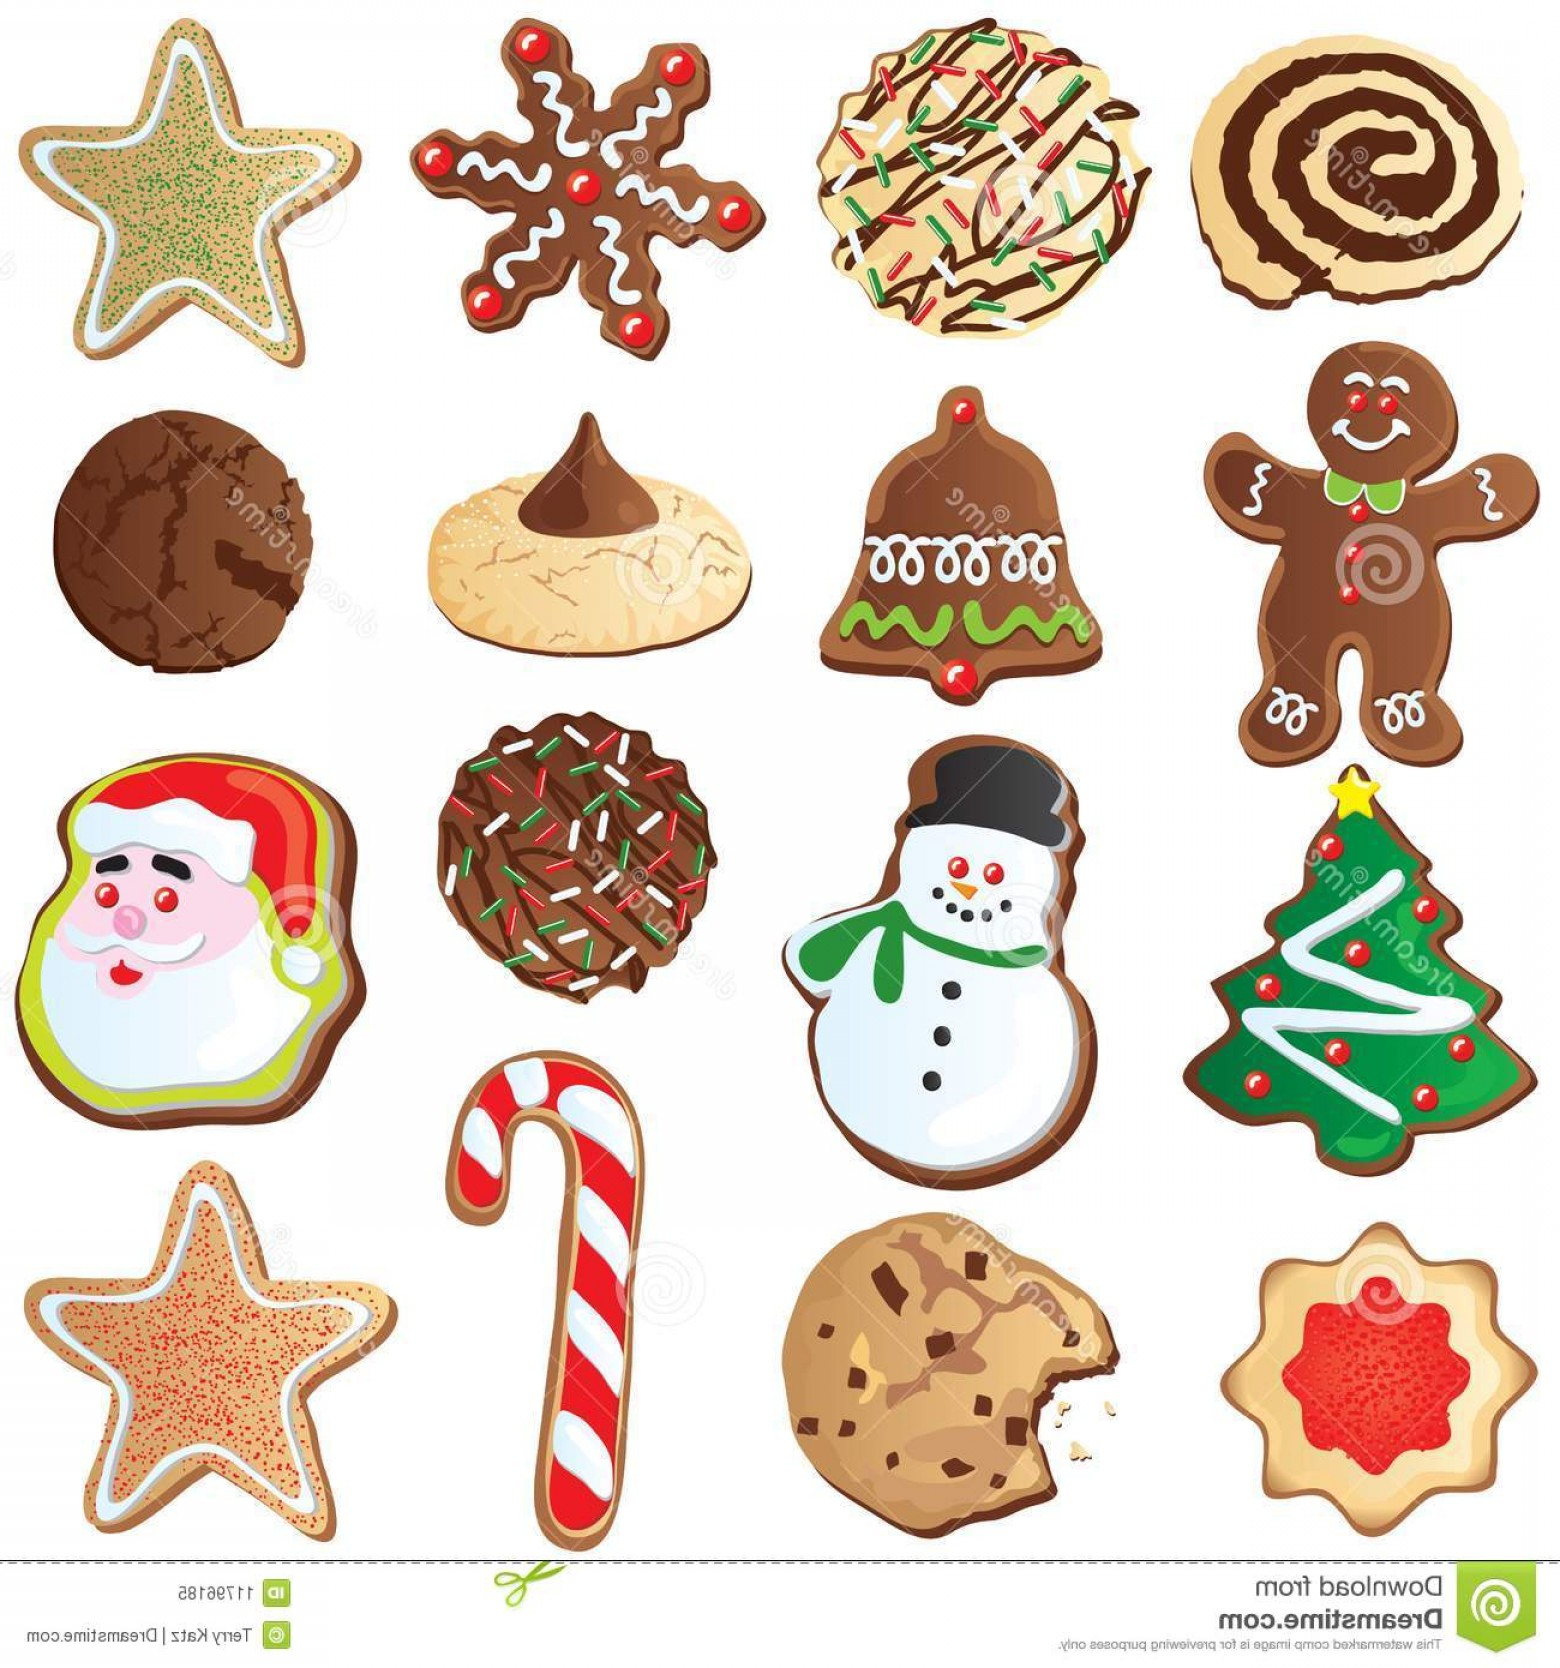 Vectors Holiday Baking: Royalty Free Stock Photo Days Cute Christmas Cookies Image